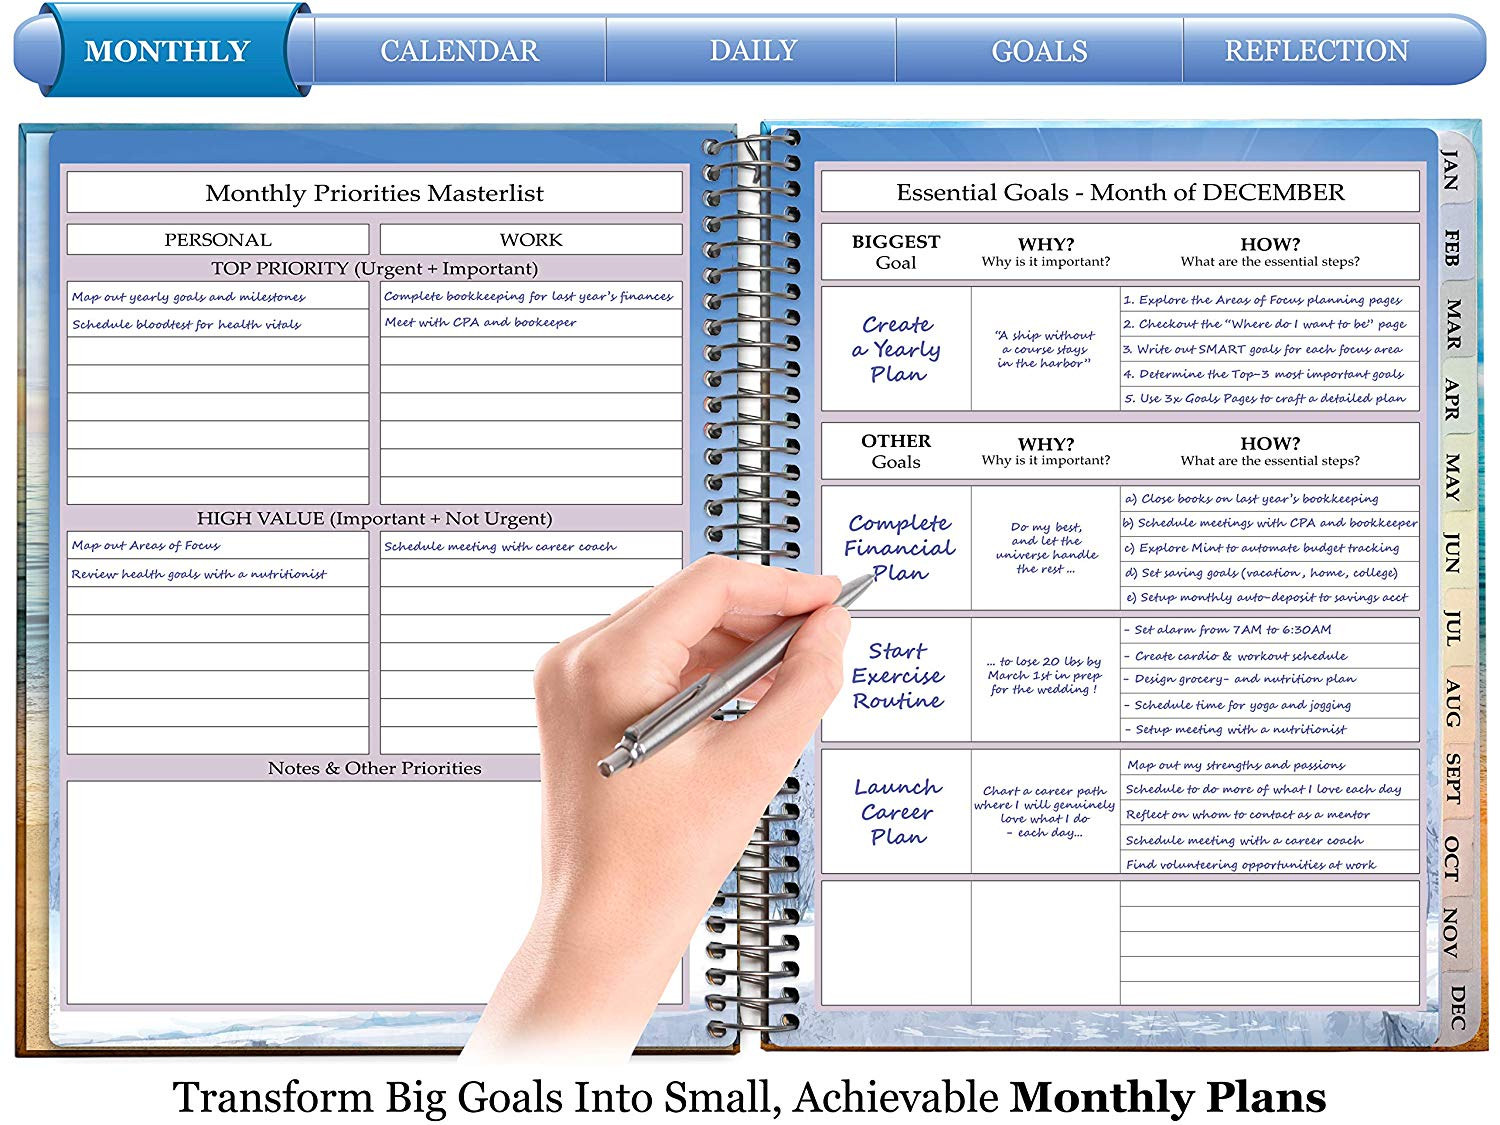 Tools4Wisdom Planner Review